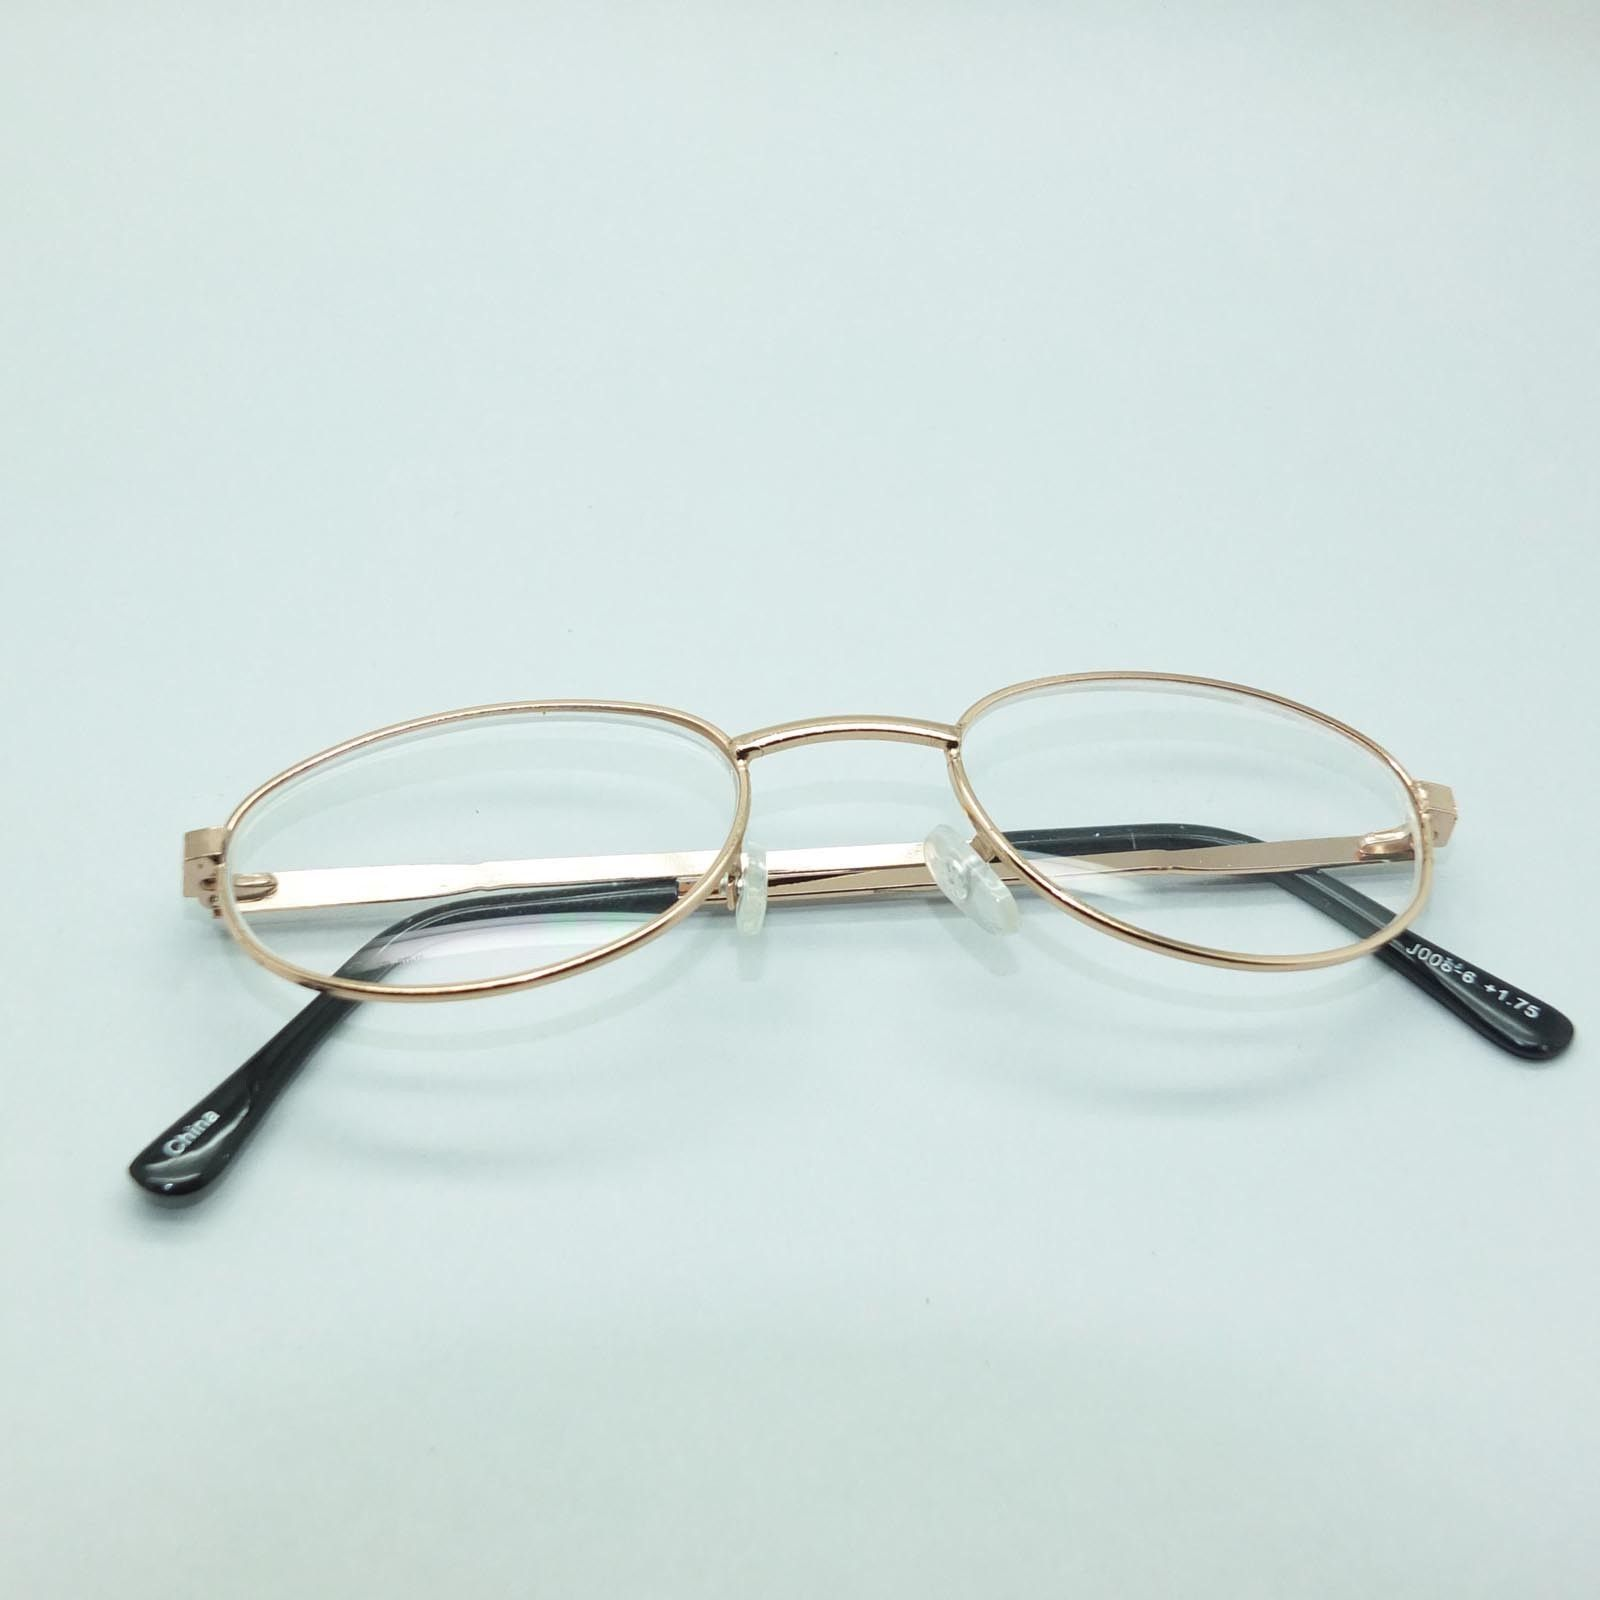 Super Petite Delicate Lightweight Reading Glasses Gold Metal Frame +2.50 Lens